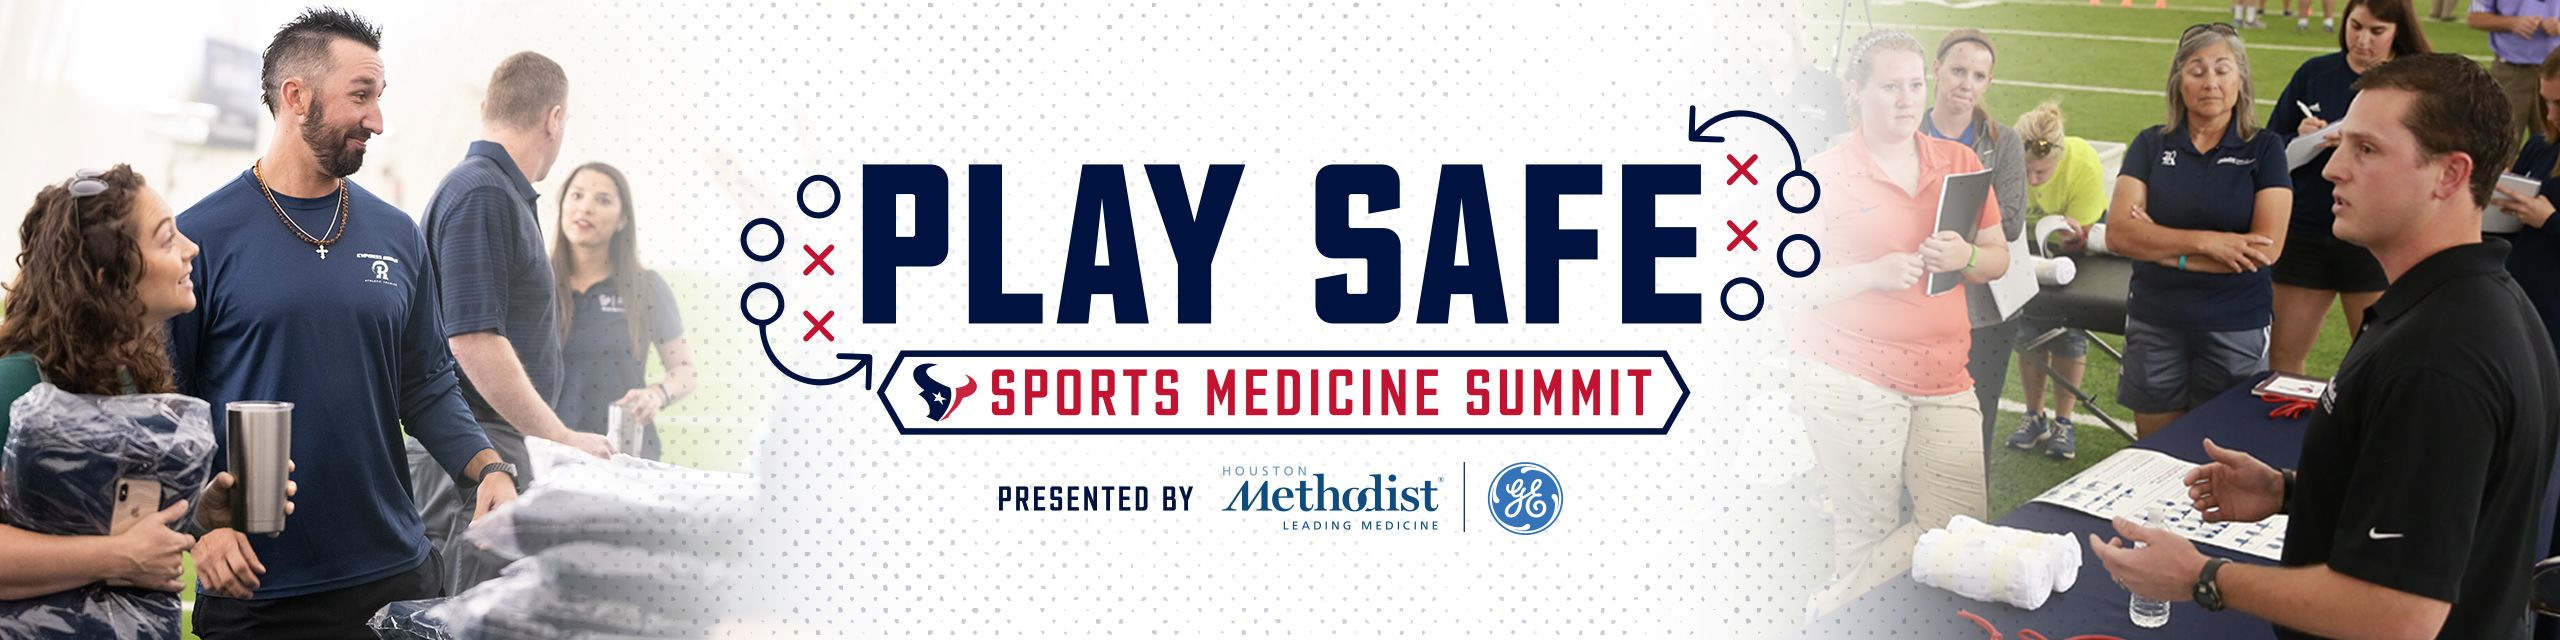 Play Safe - Sports Medicine Summit presented by Houston Methodist and GE